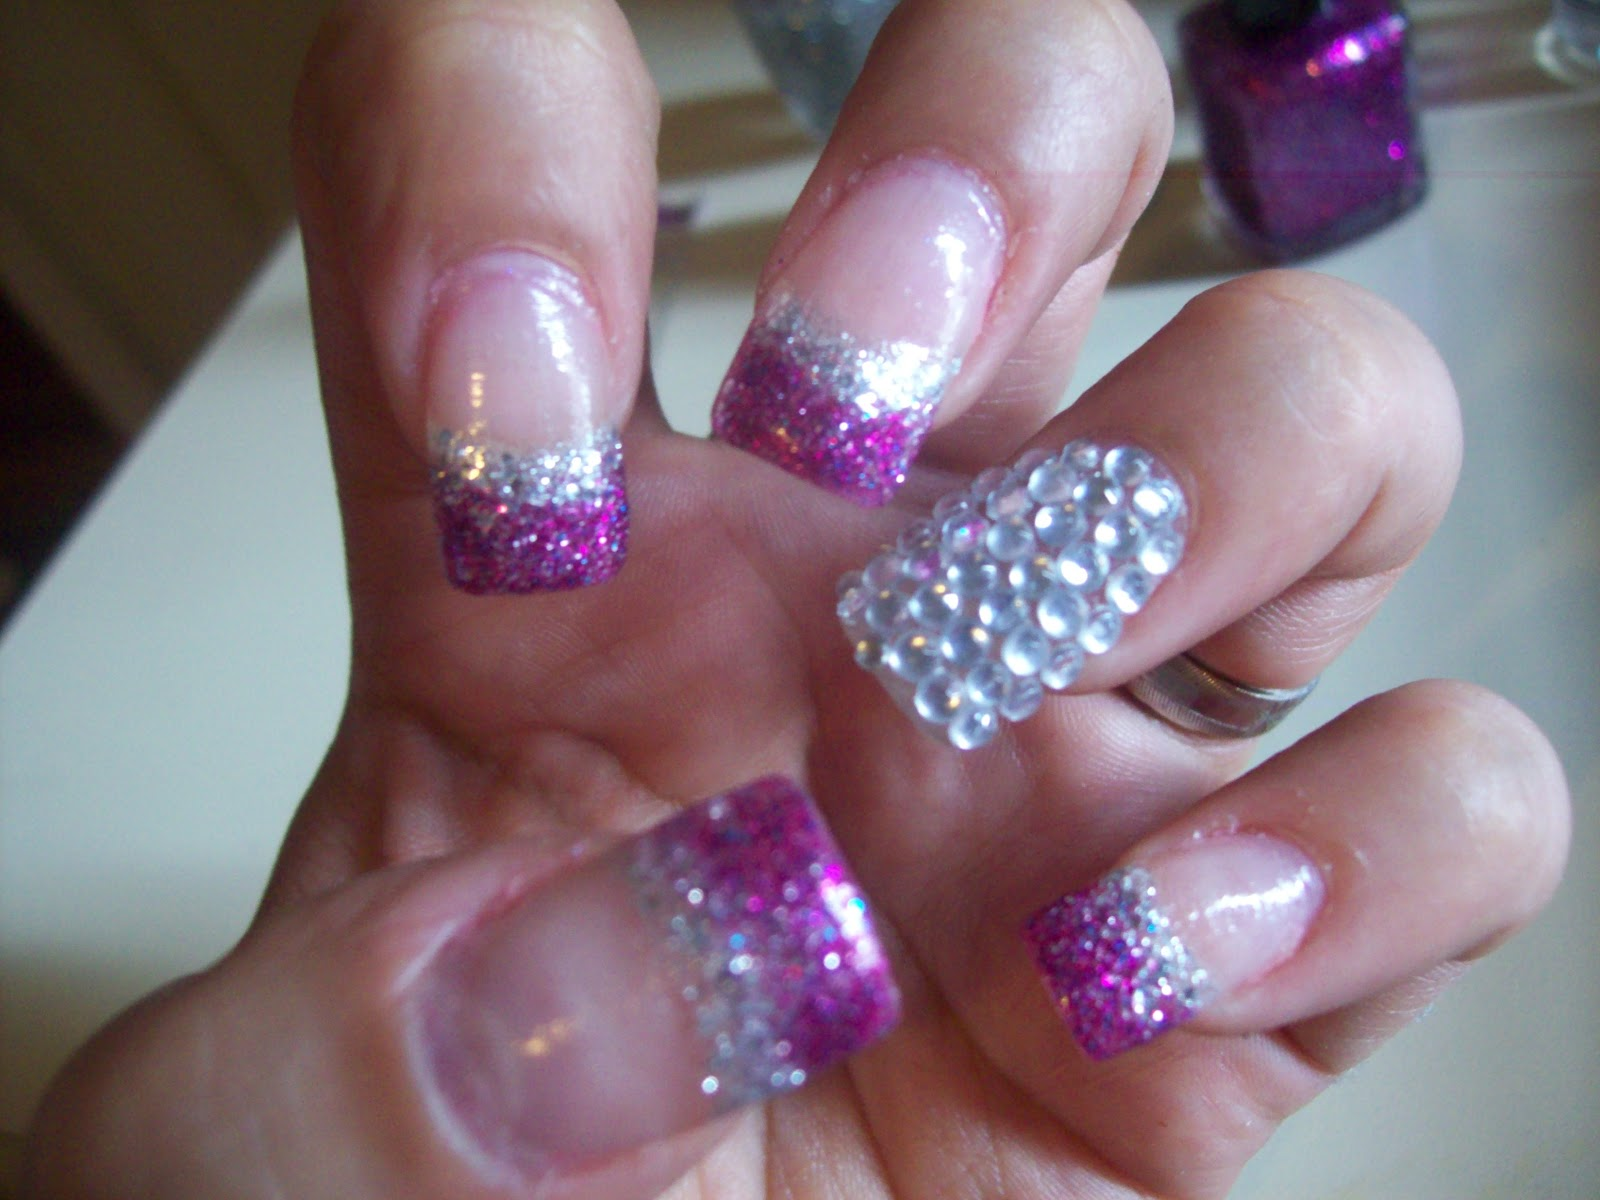 Boybeaterchic Nails: Fuchsia purple and silver glitter nails